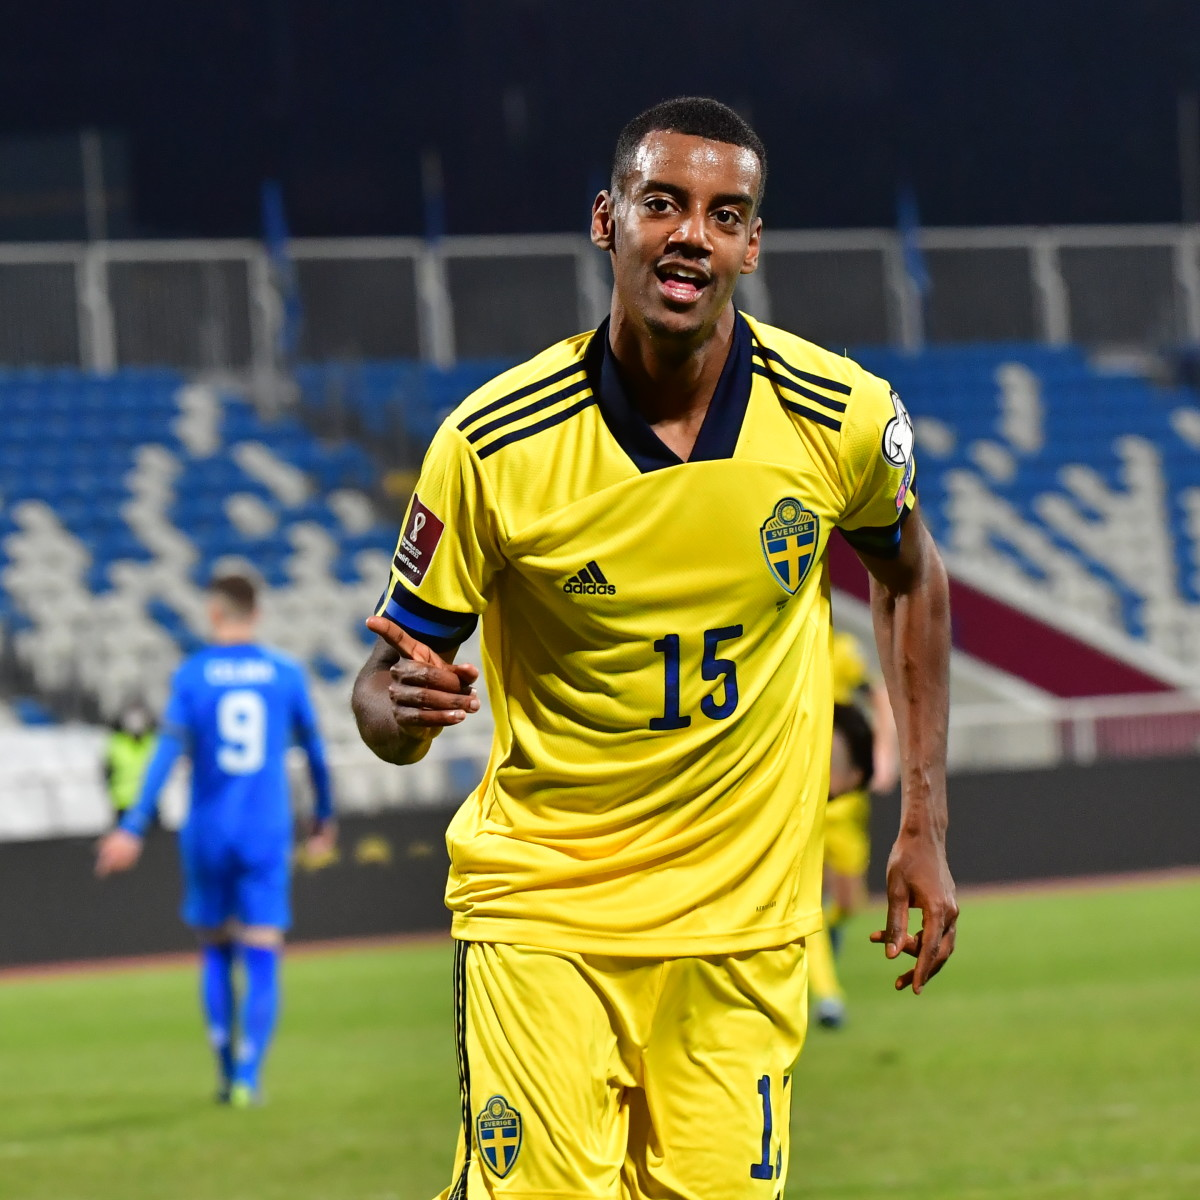 Alexander Isak: An alternative for Chelsea to Erling Haaland? - Sports Illustrated Chelsea FC News, Analysis and More